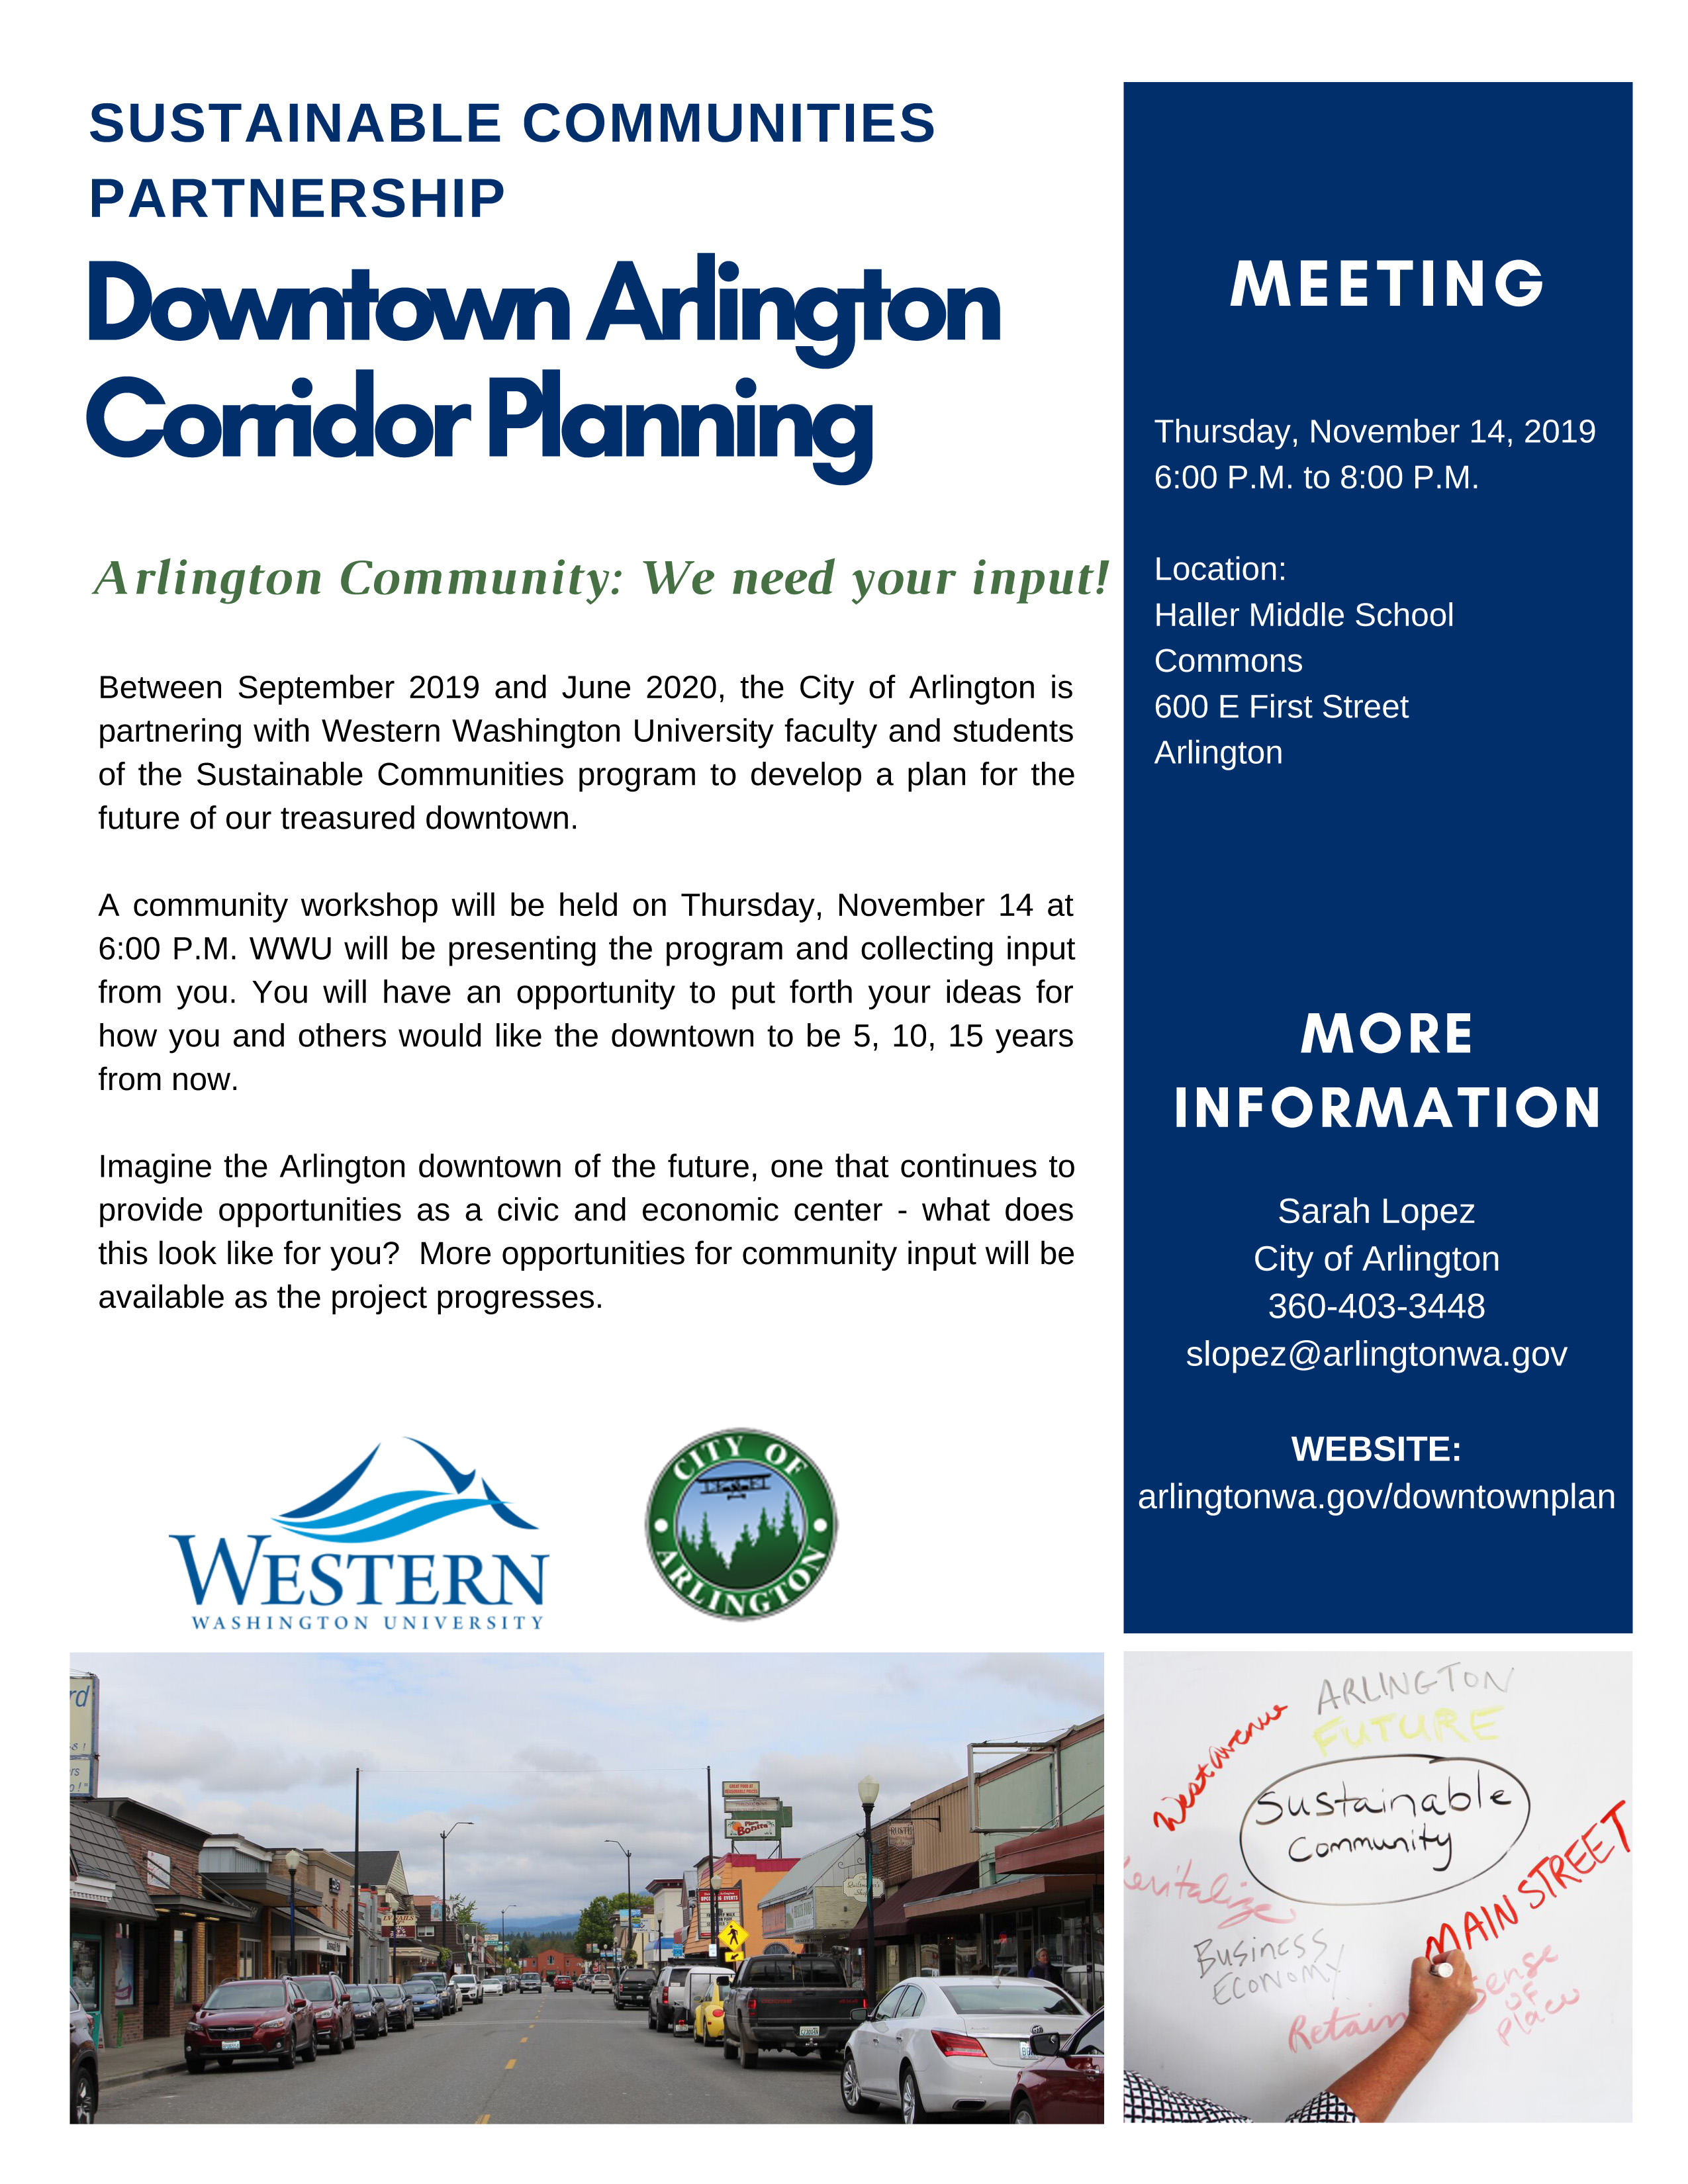 Sustainable communities Nov 14 meeting